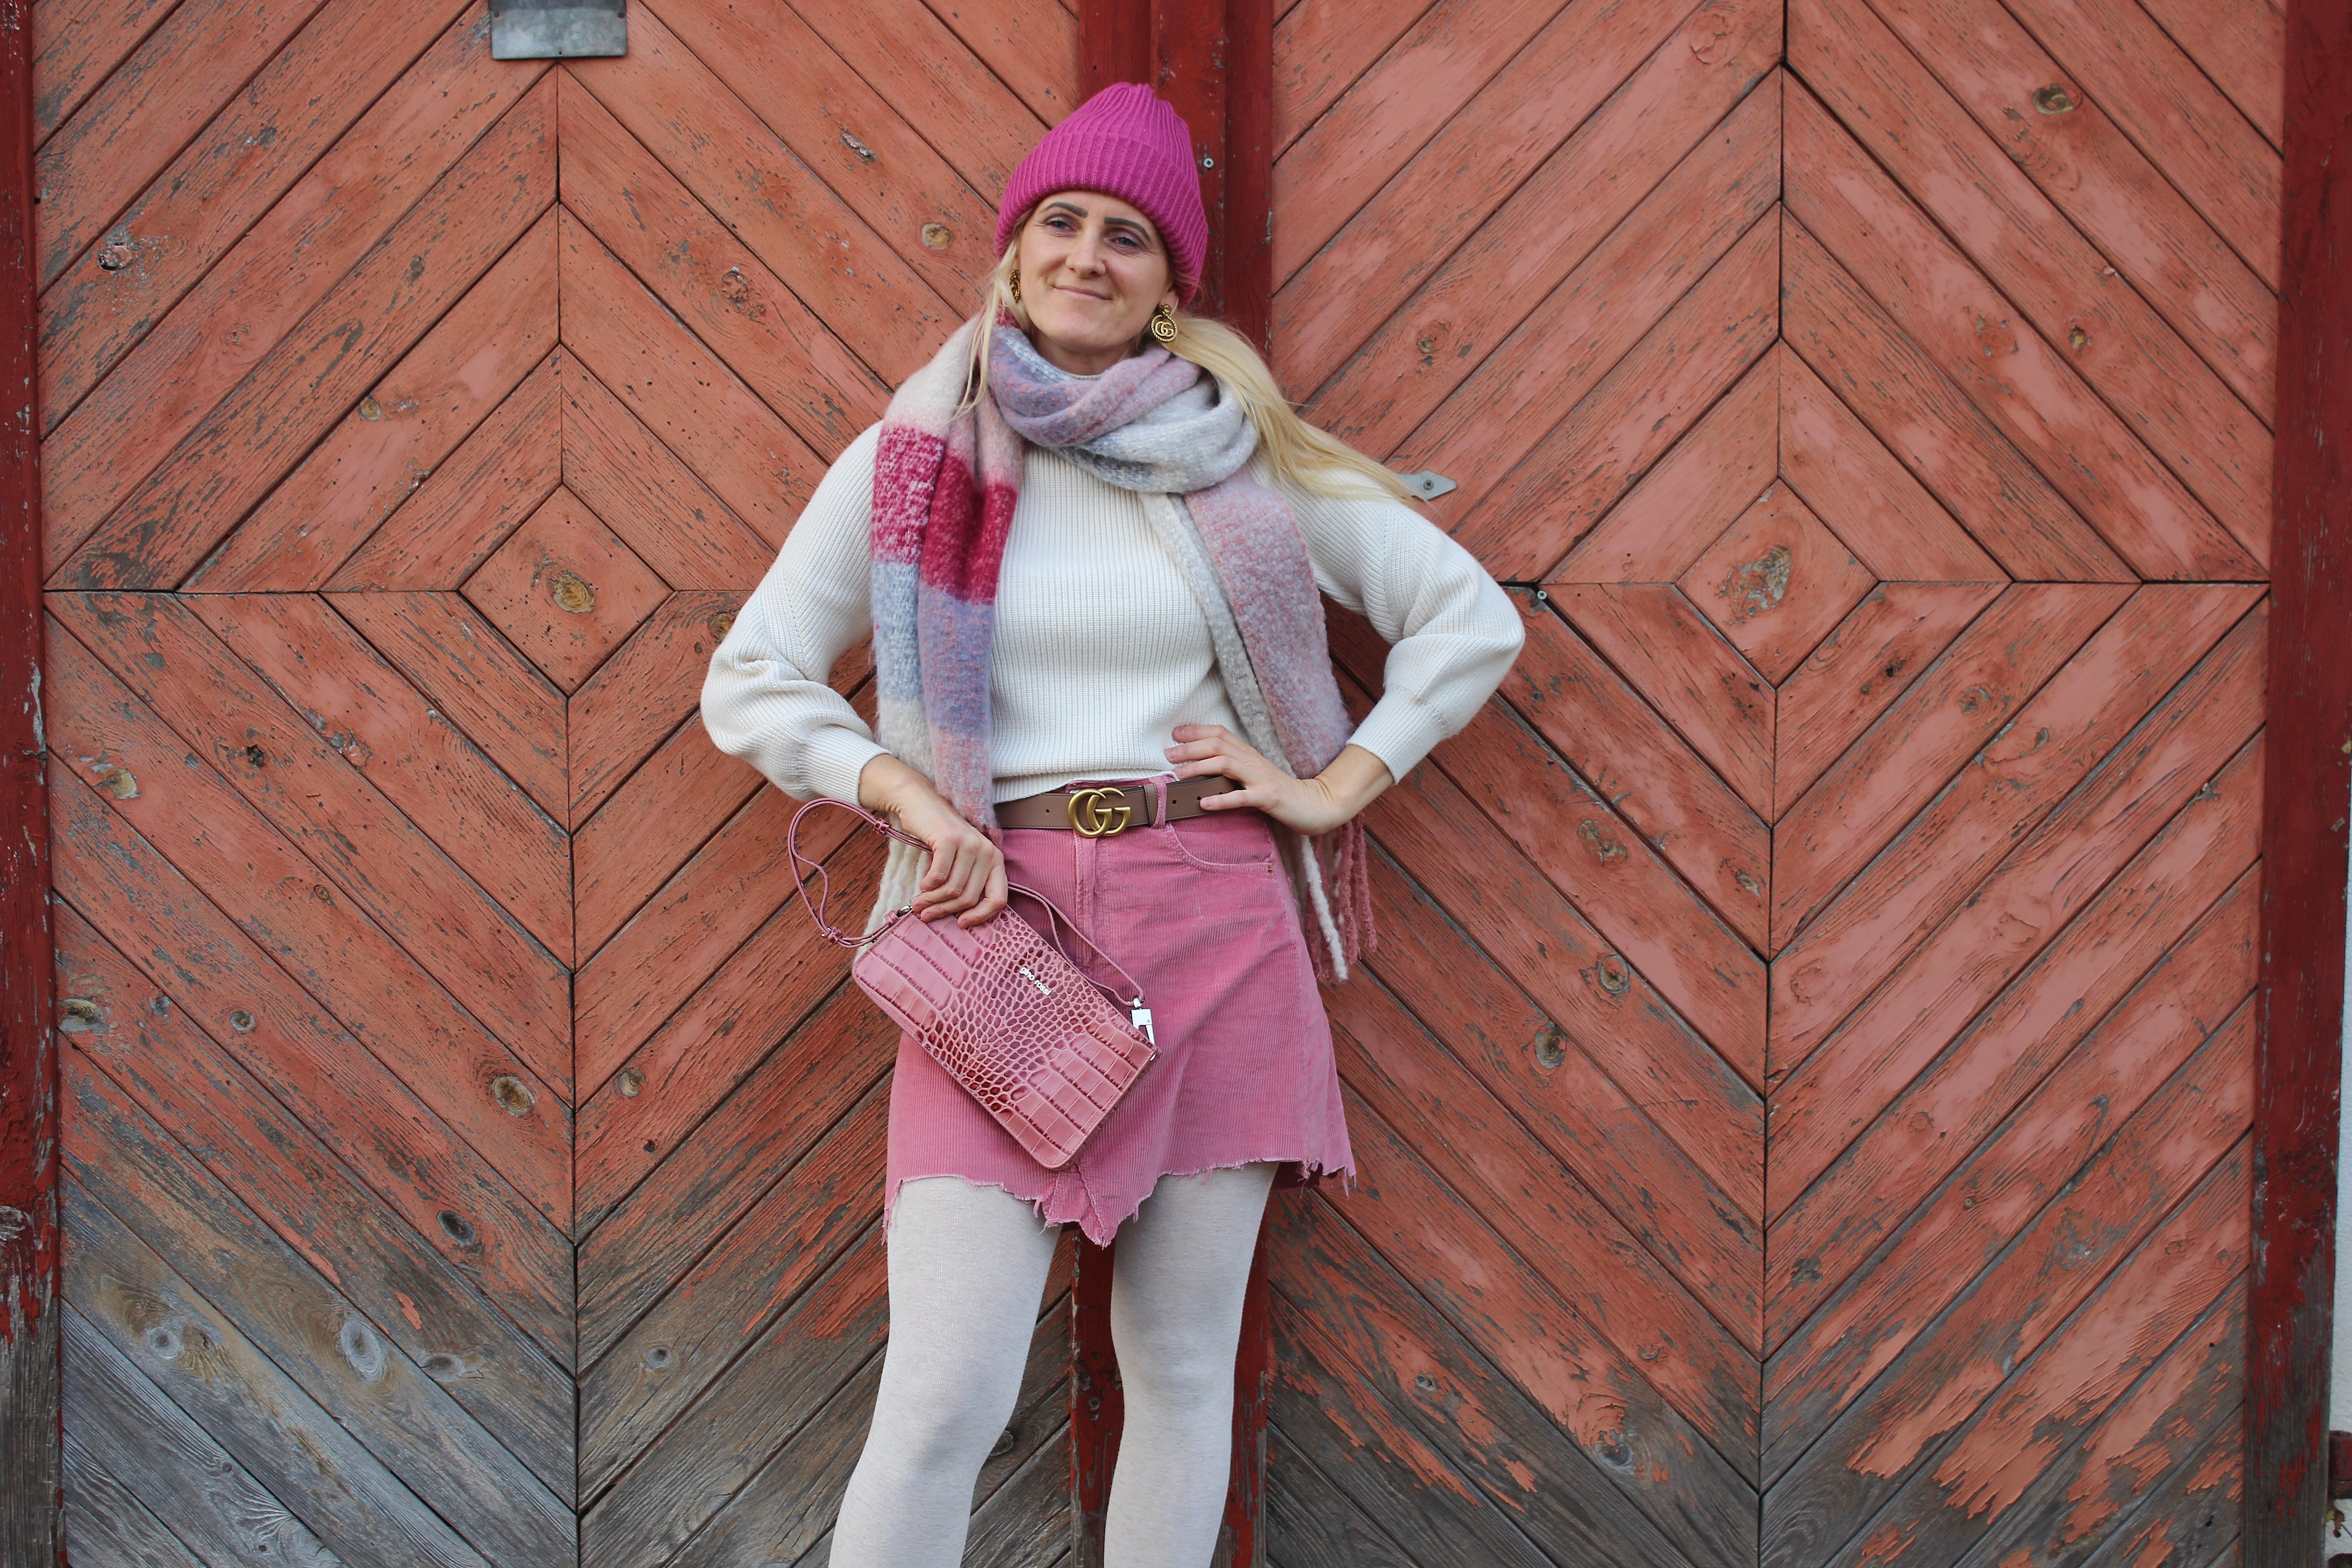 Winteroutift-Winterlook-Minirock-Skirt-CCC Shoes and Bags-Strickpullover